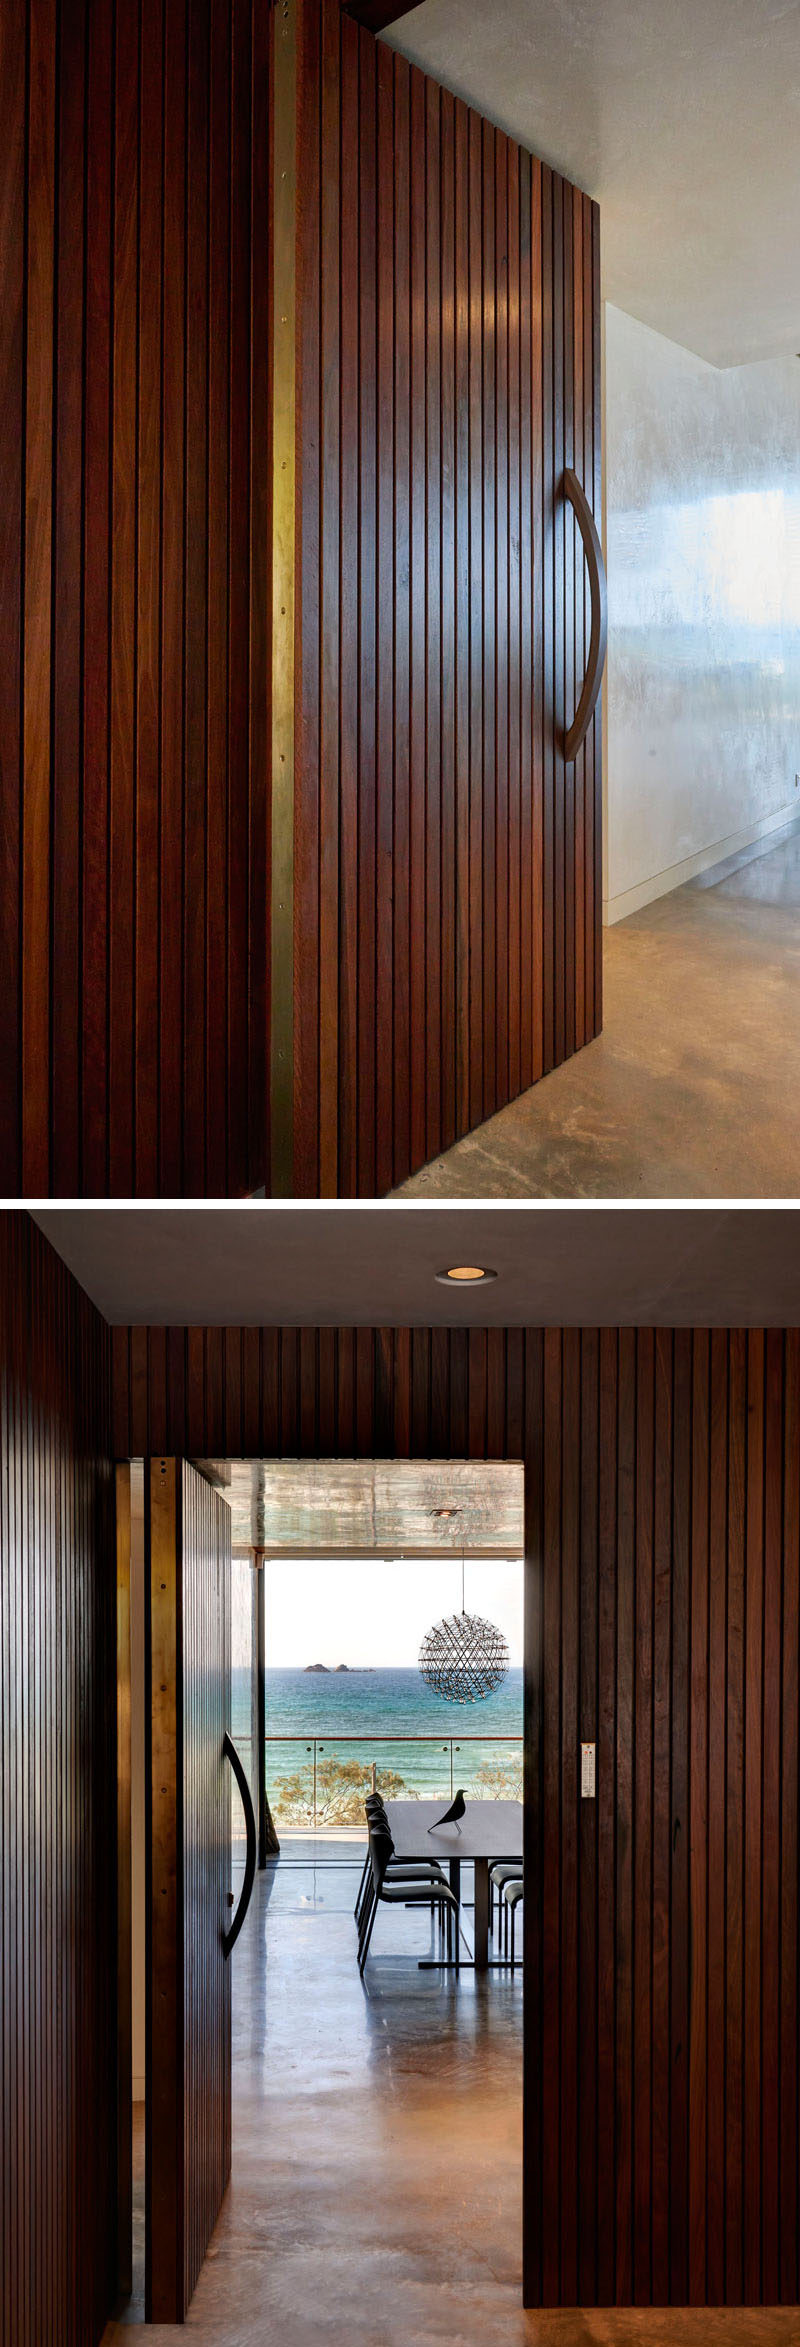 A large wooden door with vertical slats welcomes you to this Australian home.